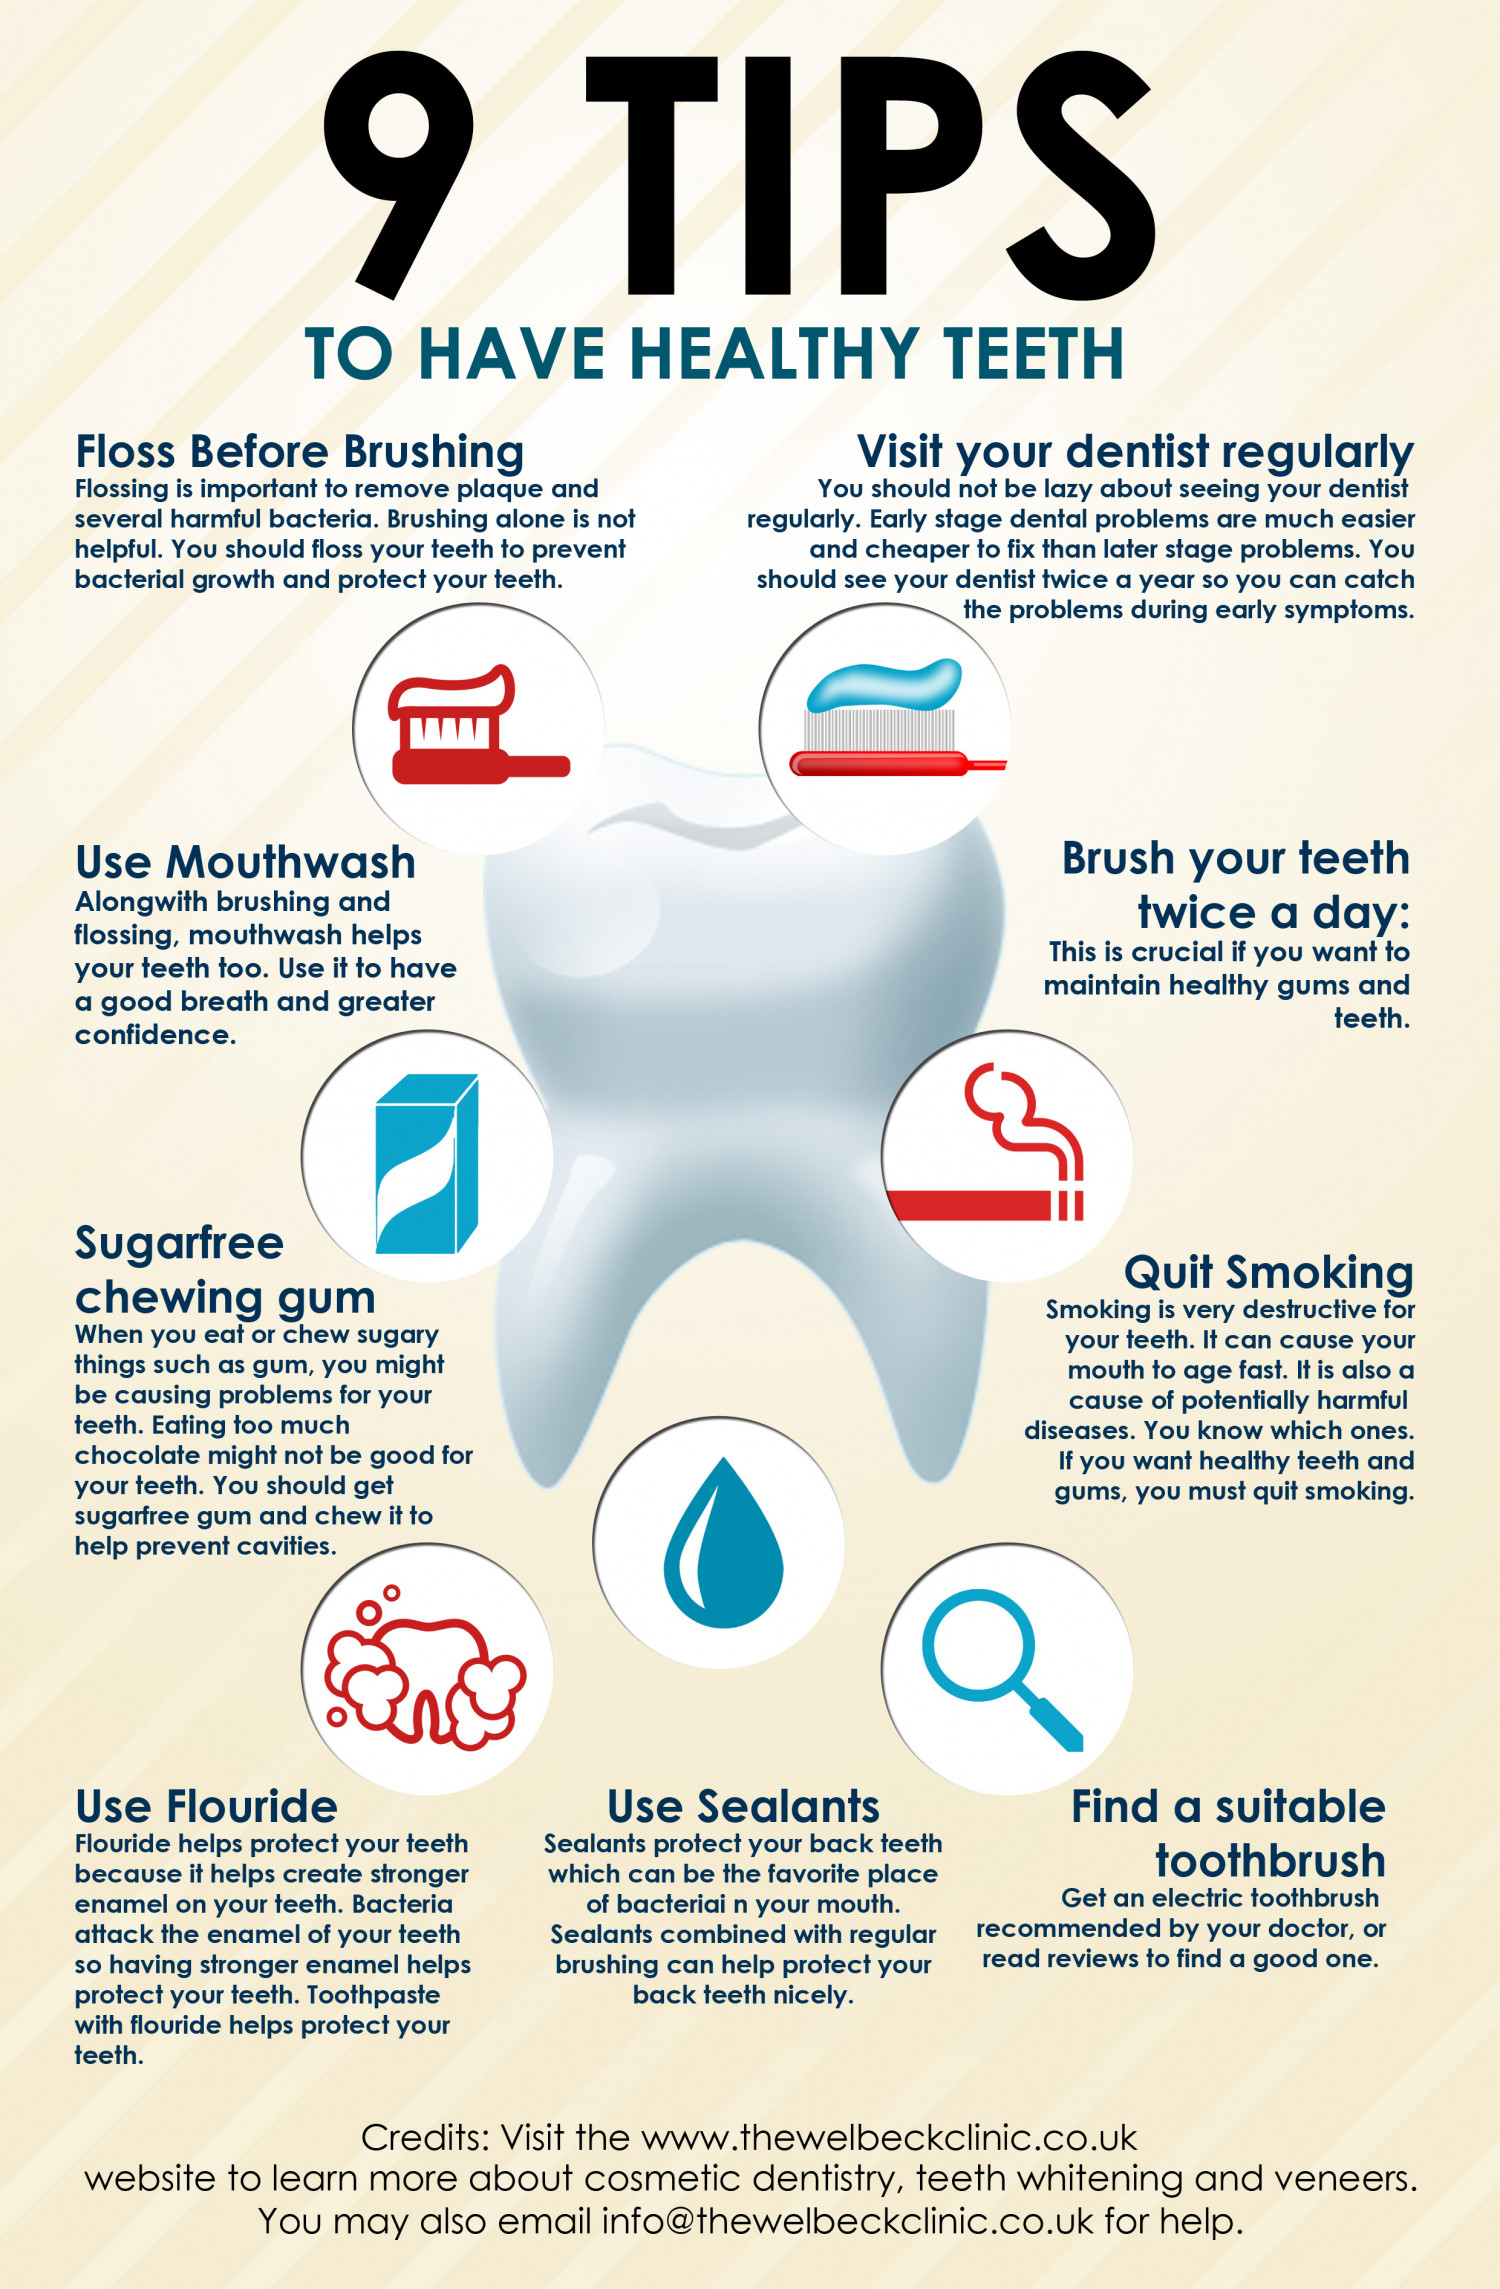 Tips for healthy teeth infographic